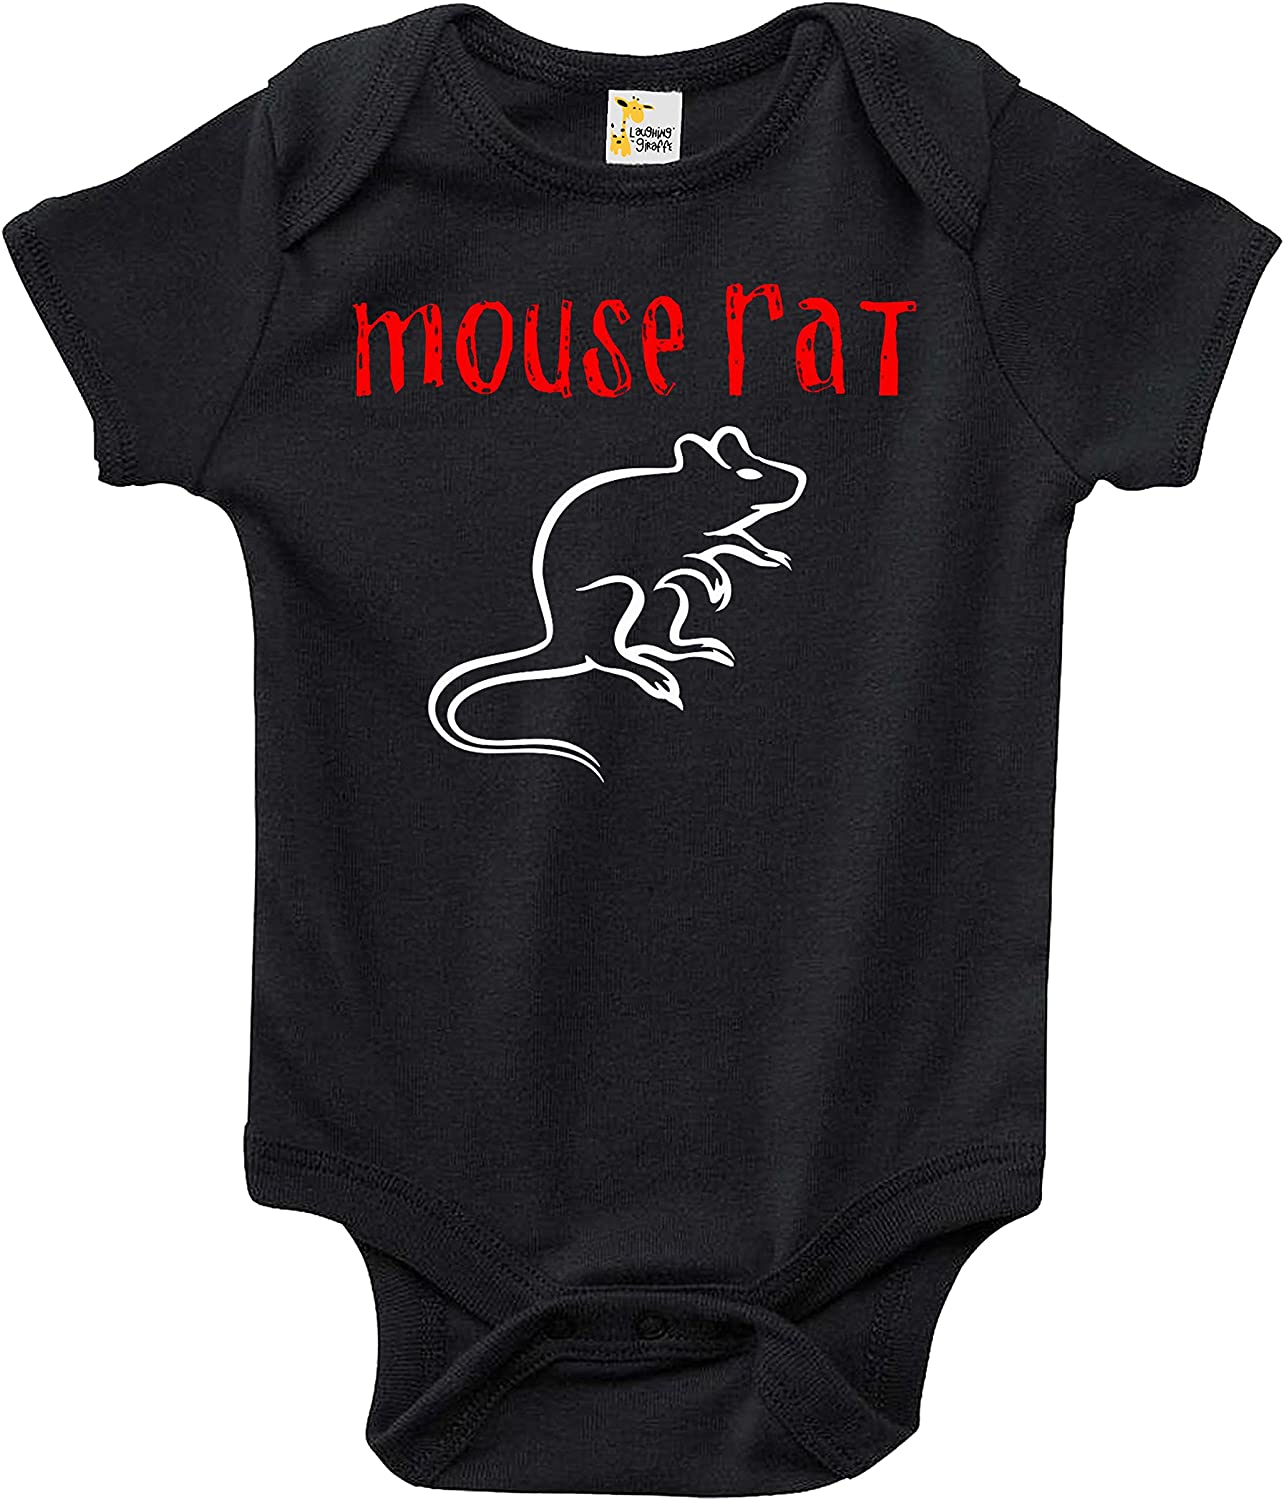 Baby Bodysuit Mouse Rat Baby Clothes for Infant Boys and Girls